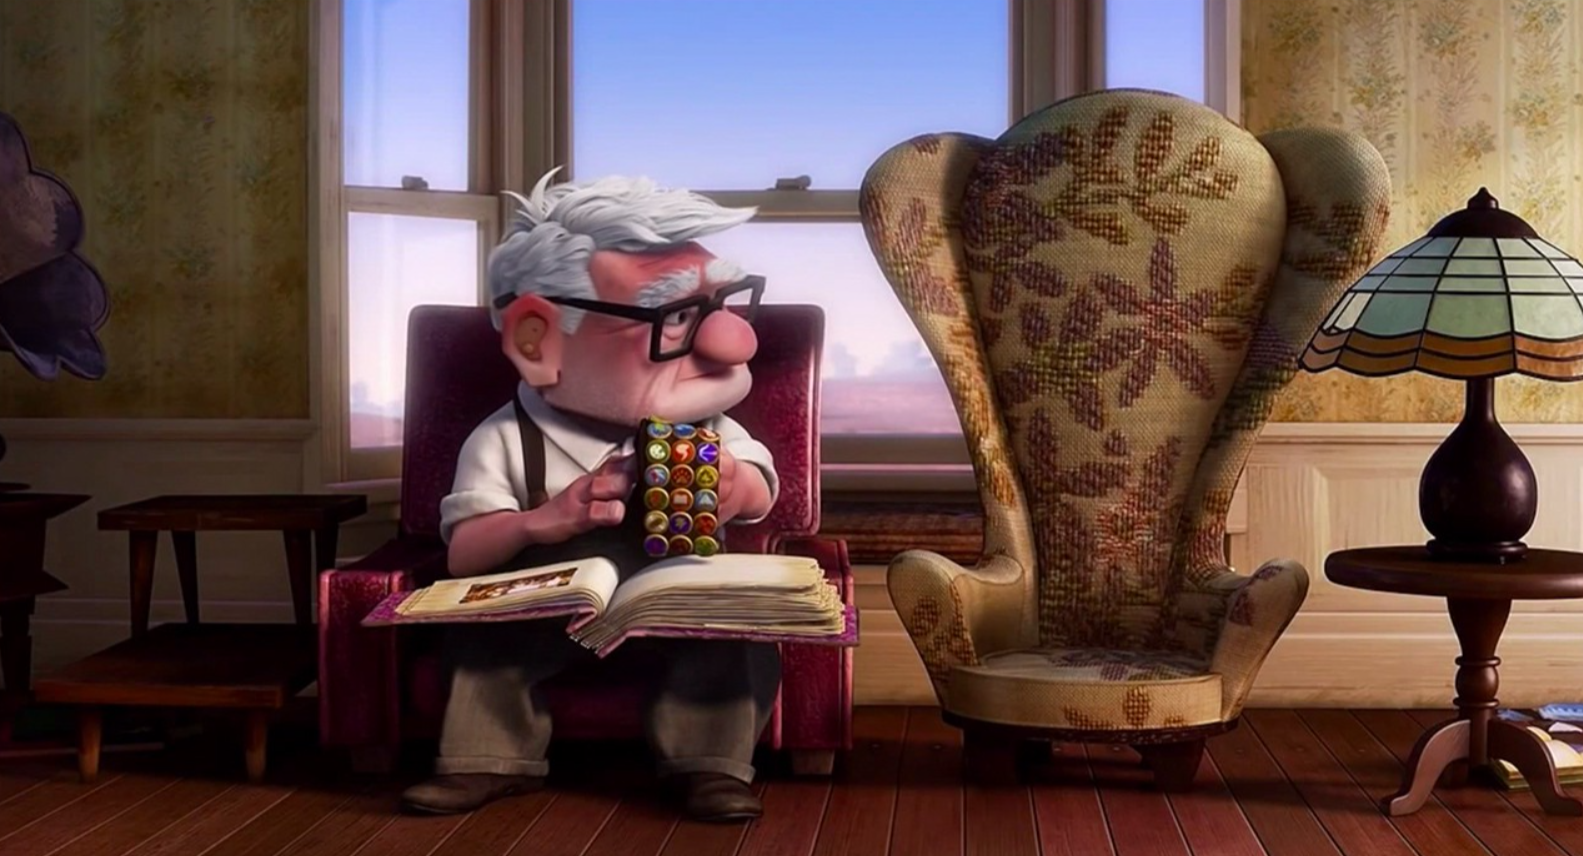 Carl sits in his armchair with a scrapbook open on his lap. He holds Russell's scout sash and looks at Ellie's empty armchair next to him.